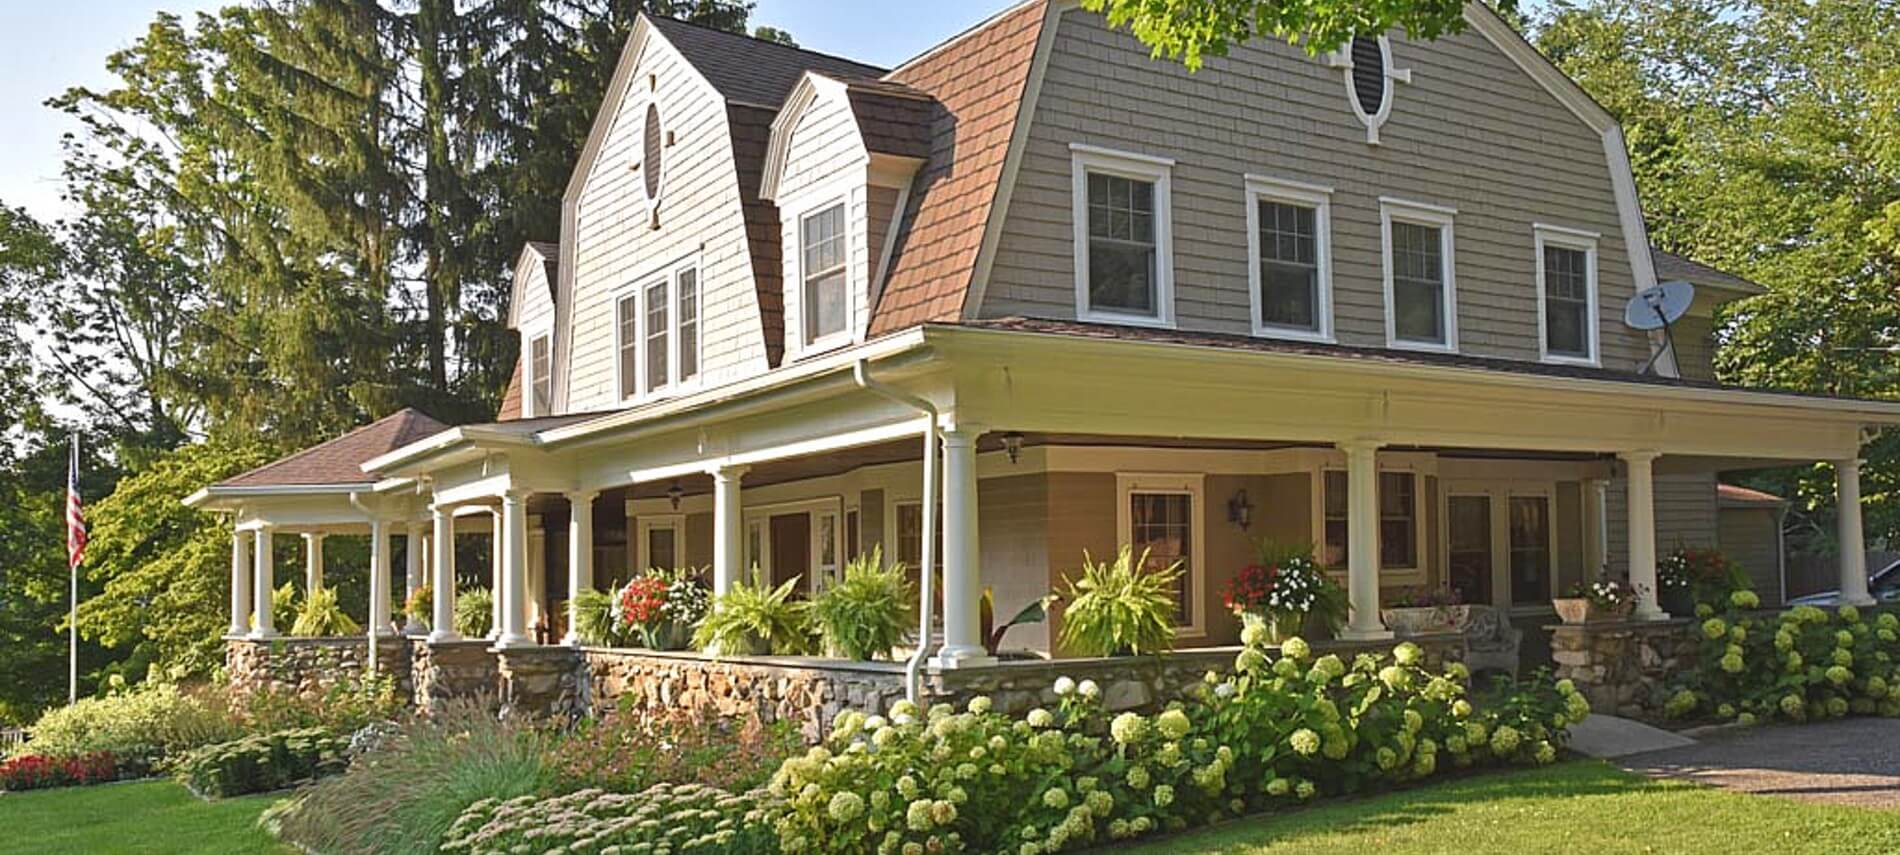 Bright sun shining on a large home with wrap around stone porch, white pillars and green landscaping